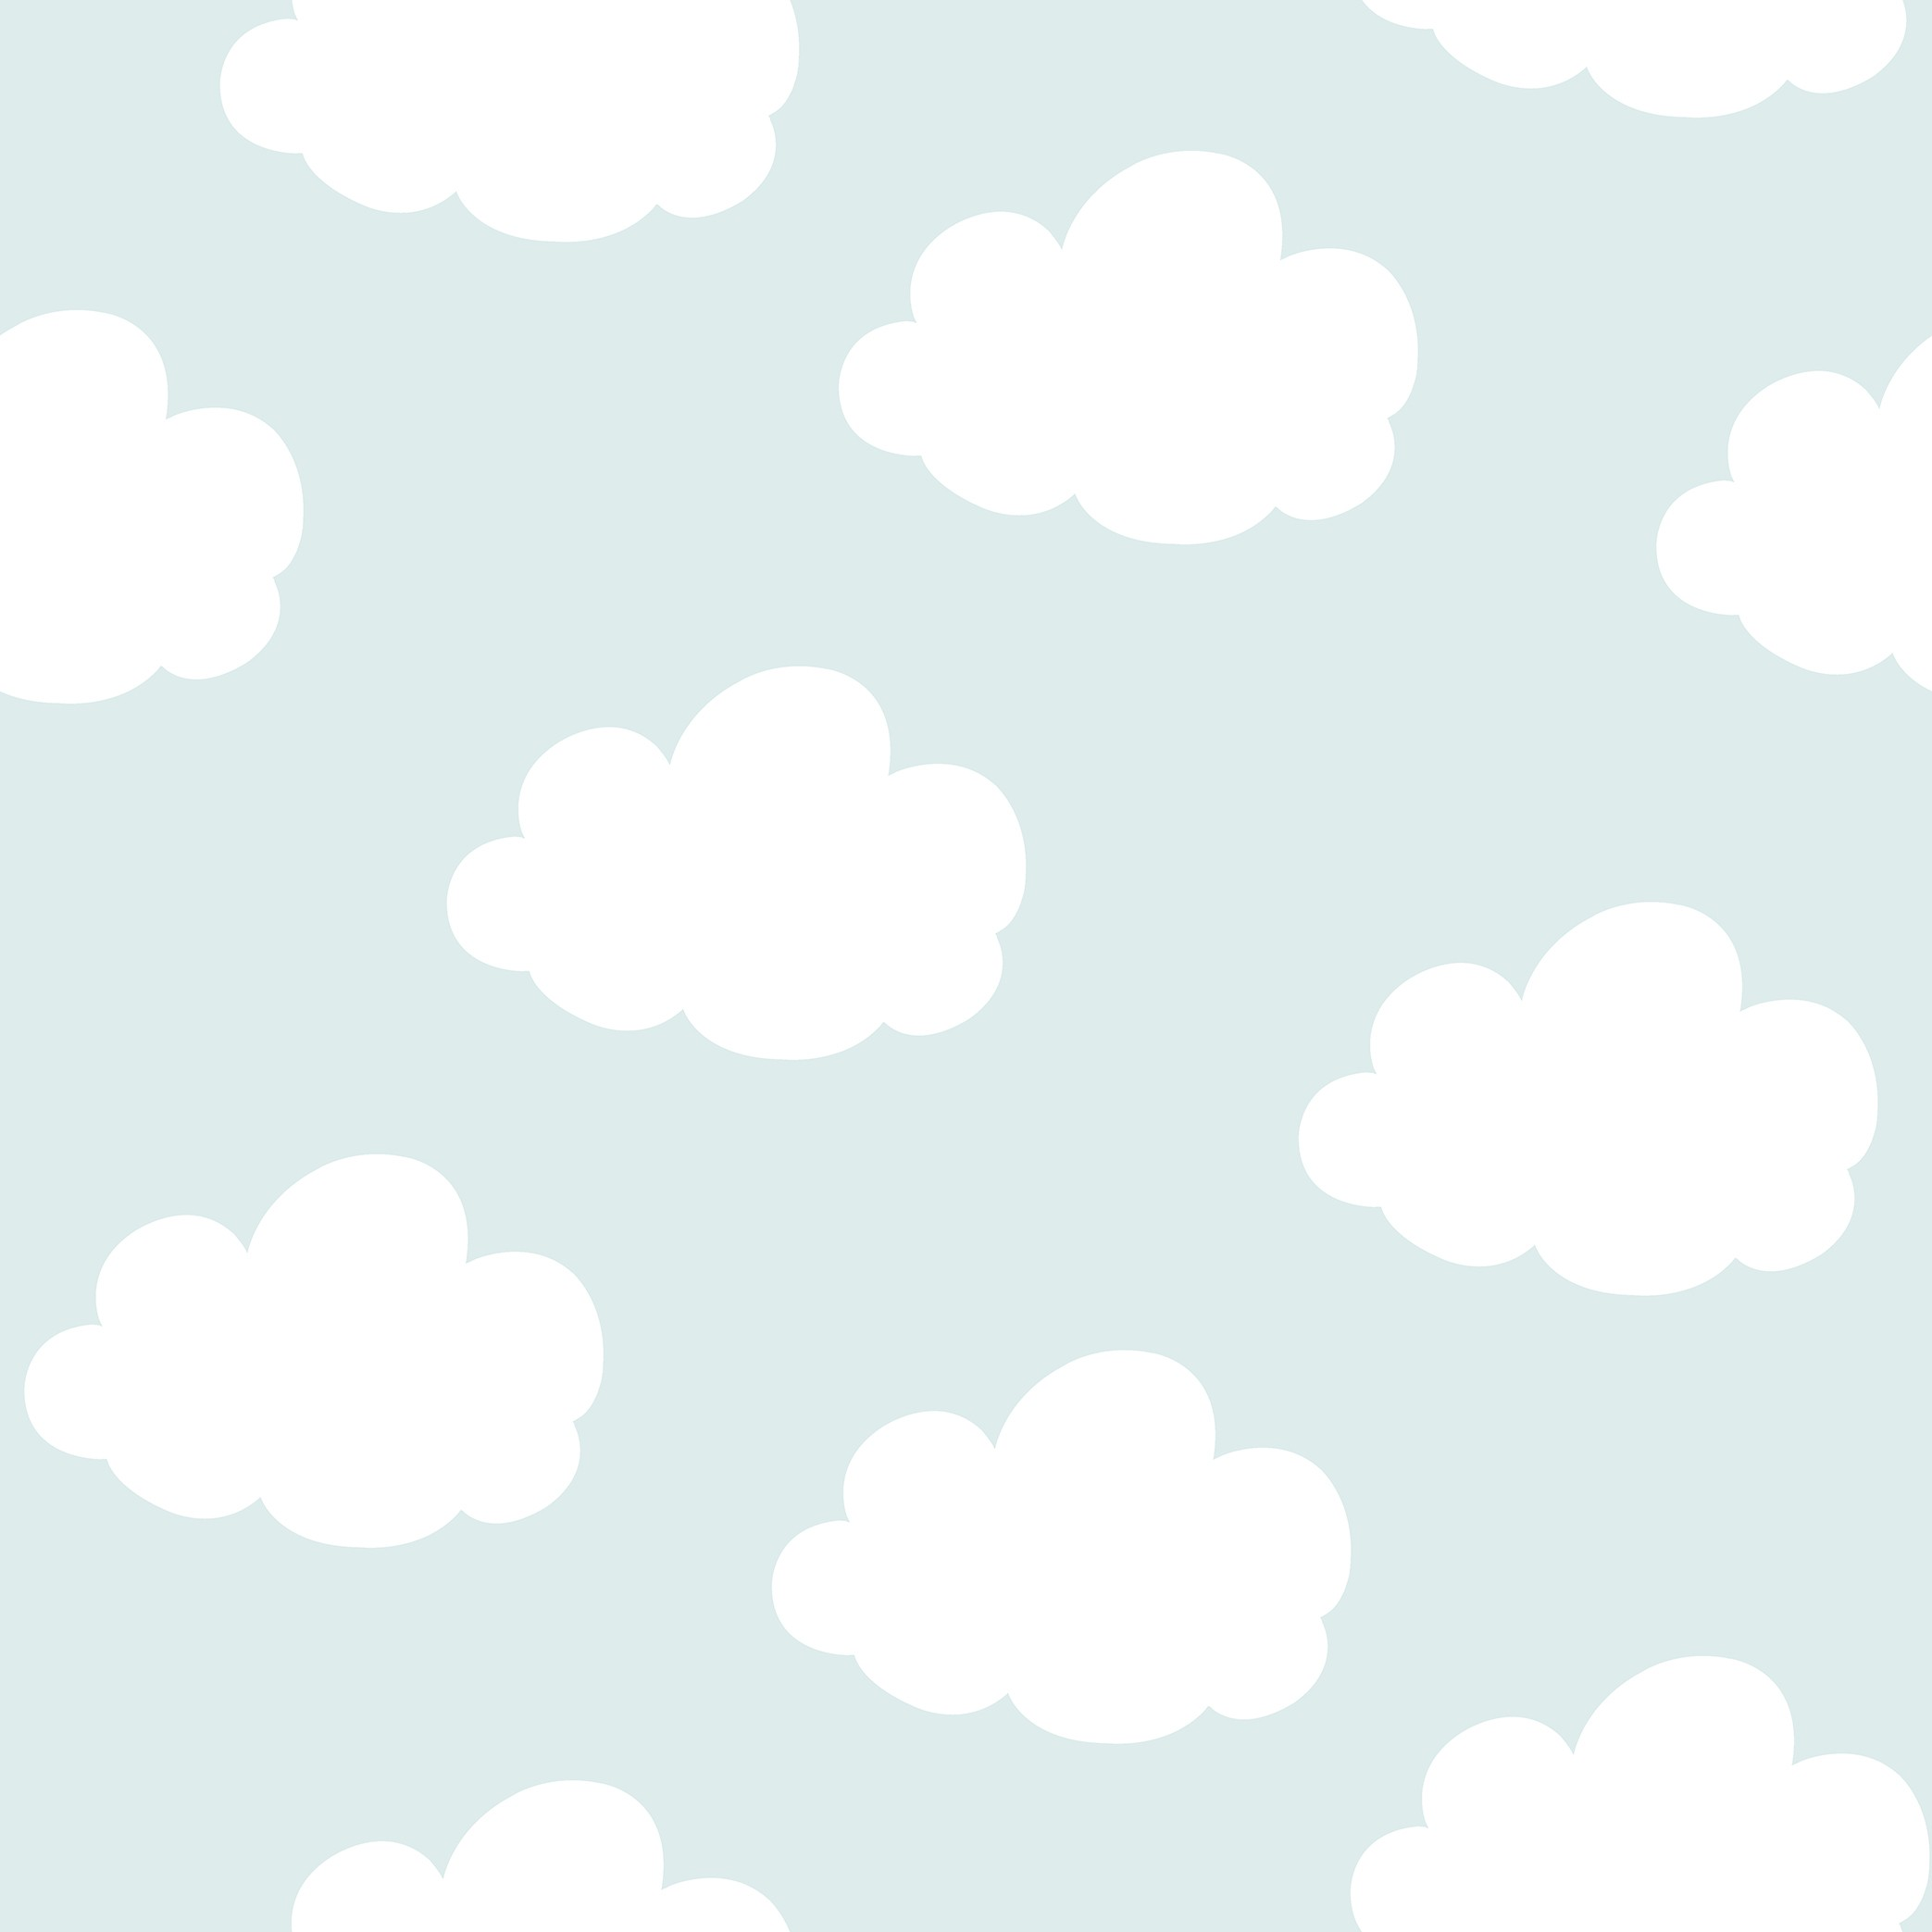 Clouds-blue-white-at-Wallpaperwebstore-wallpaper-wp4805371